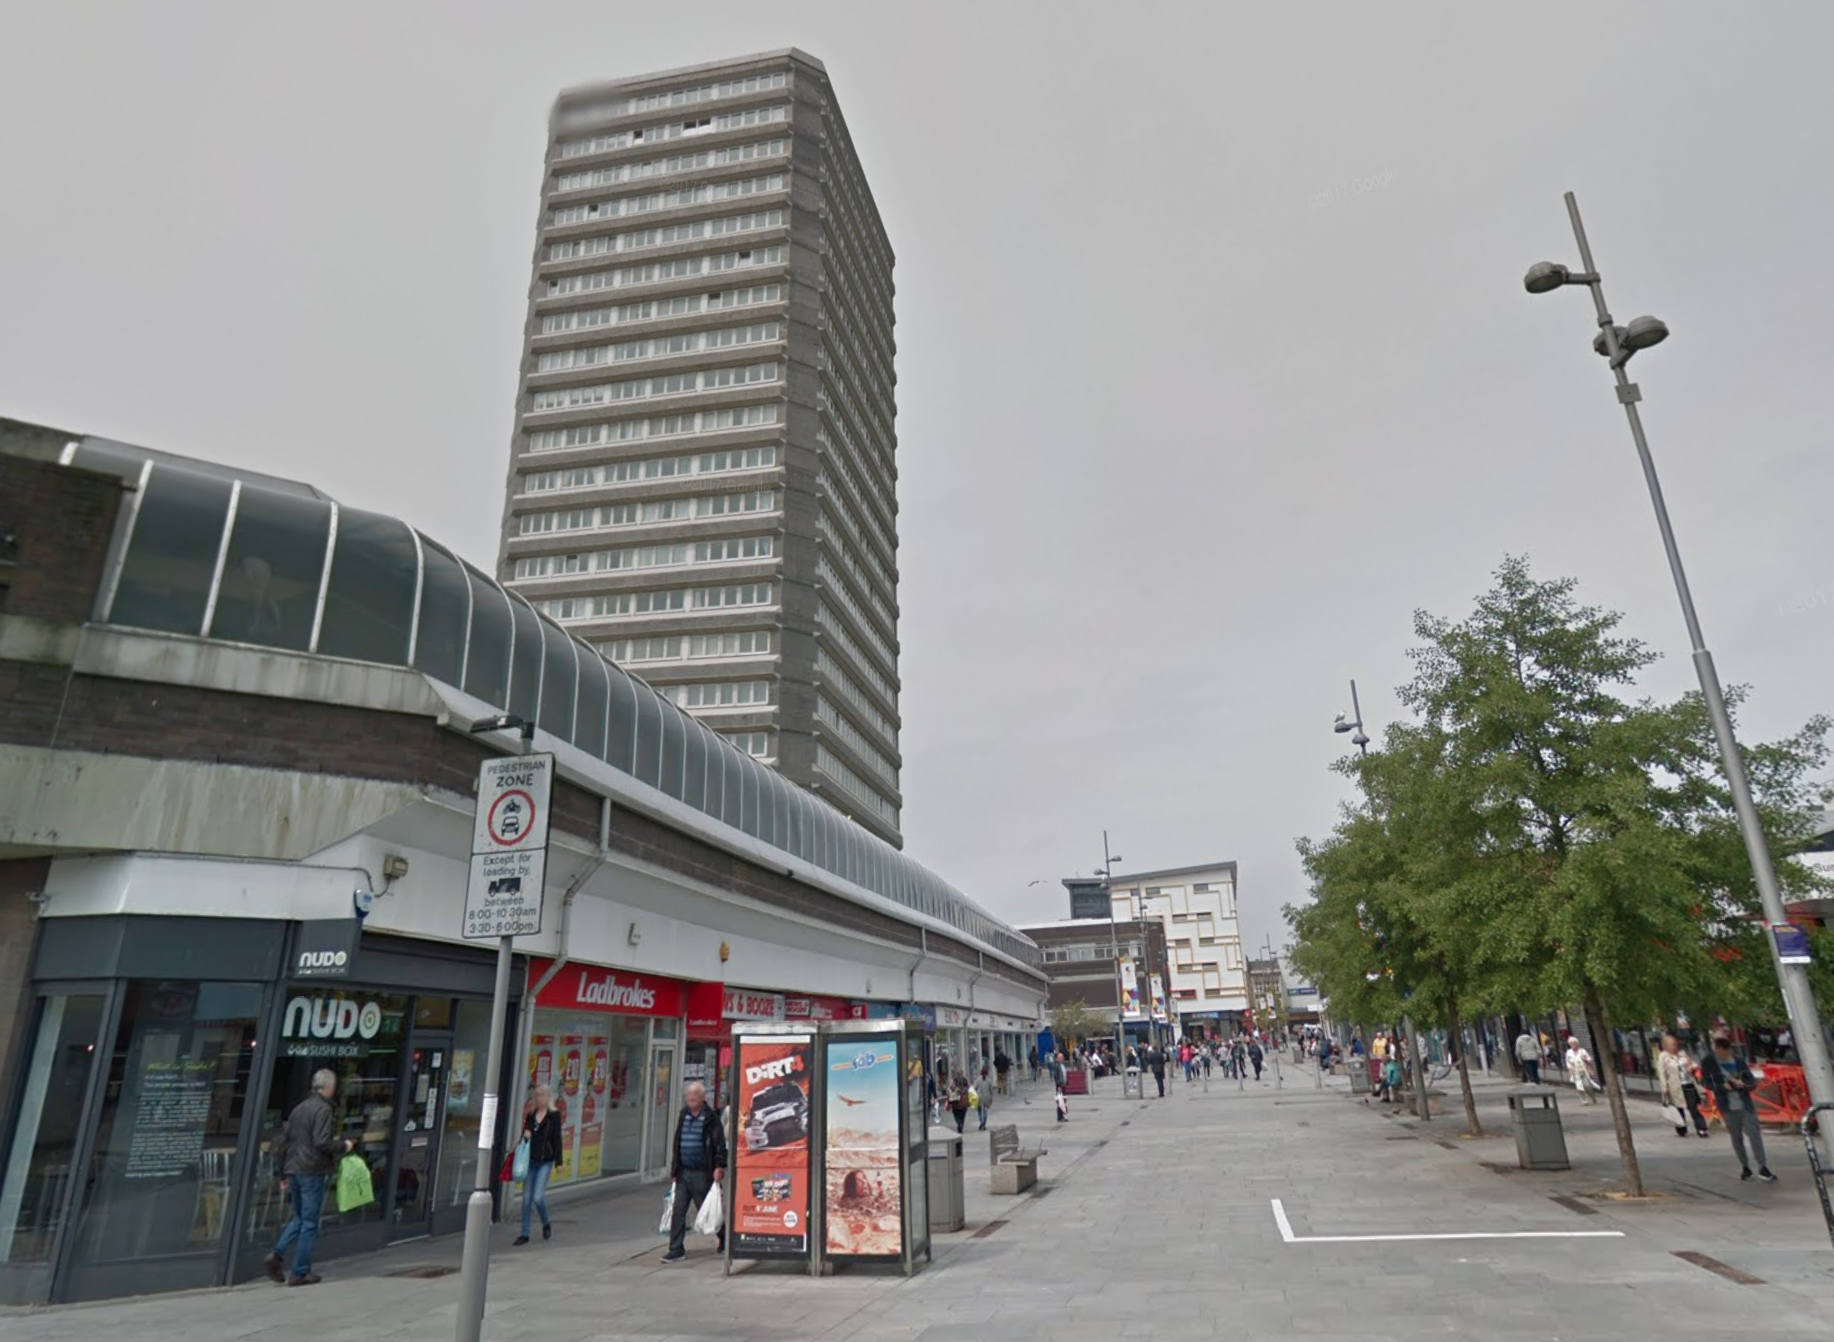 Sunderland's Business Improvement District (BID) warned people against people urinating and defacating in the city centre. (Google)